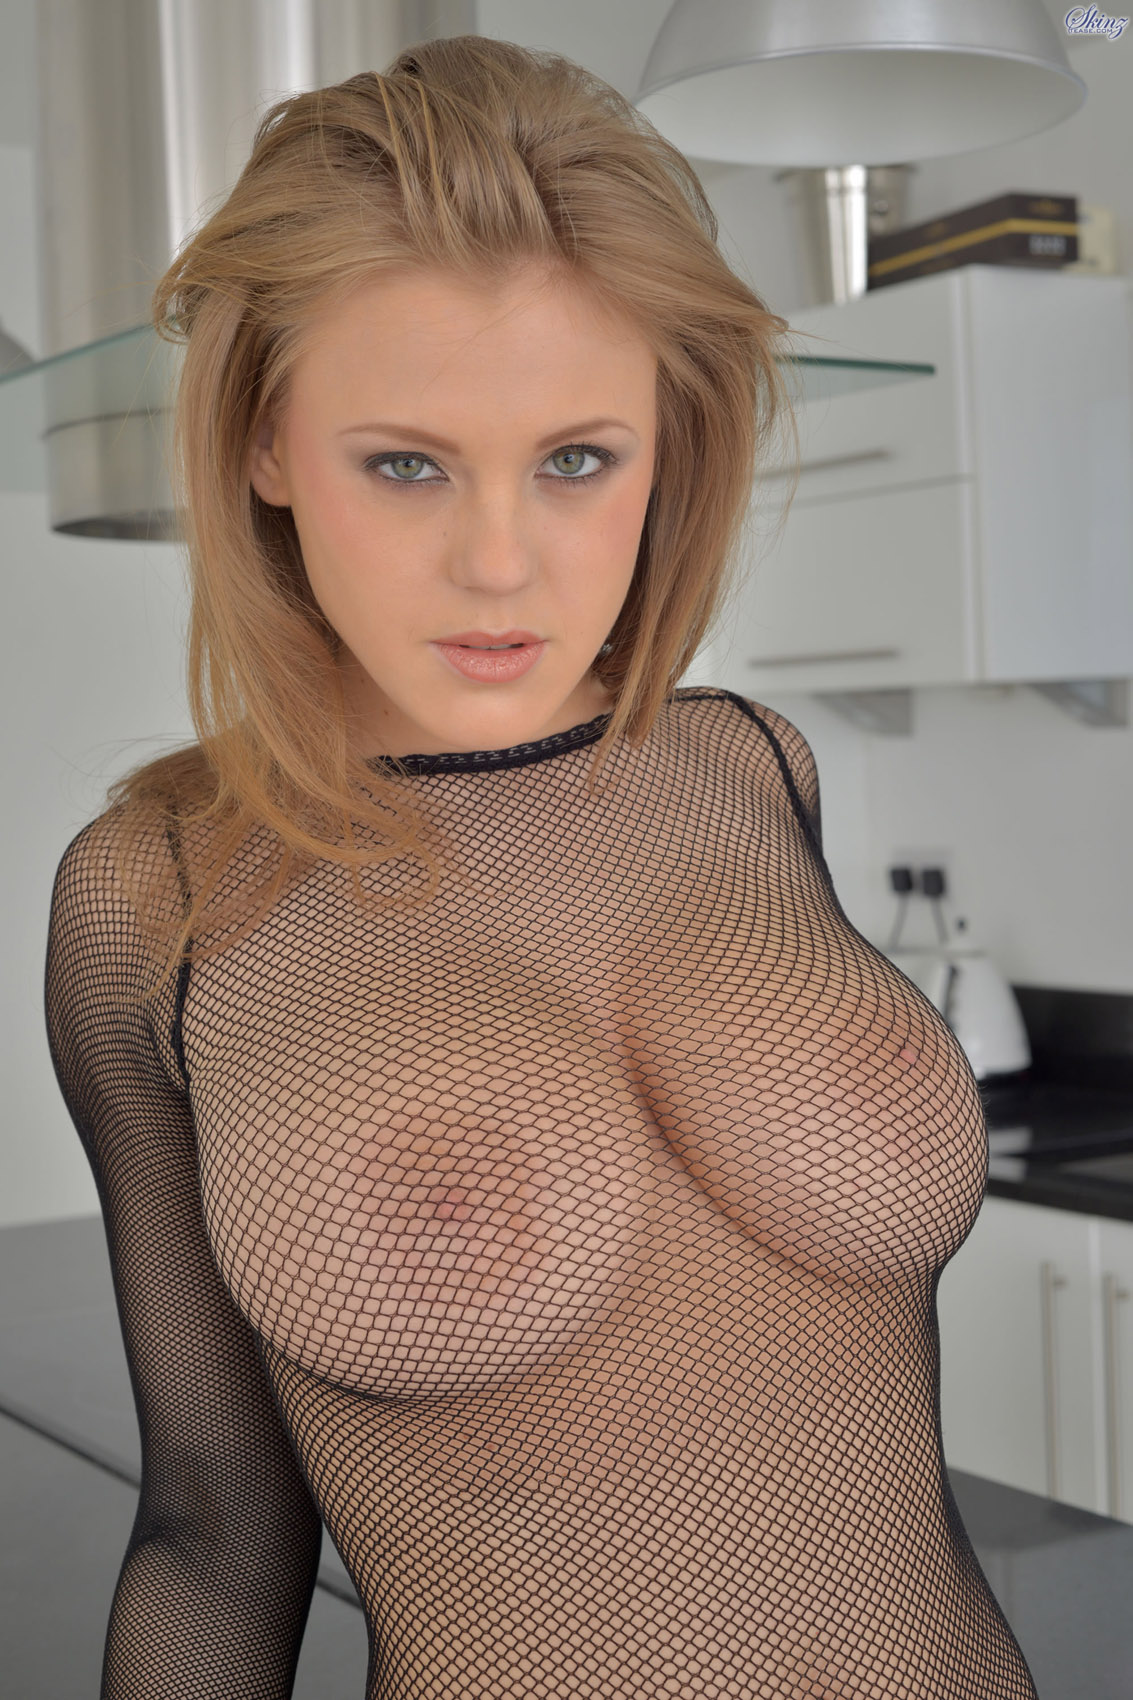 viola o fishnet outfit for zishy - bunny lust